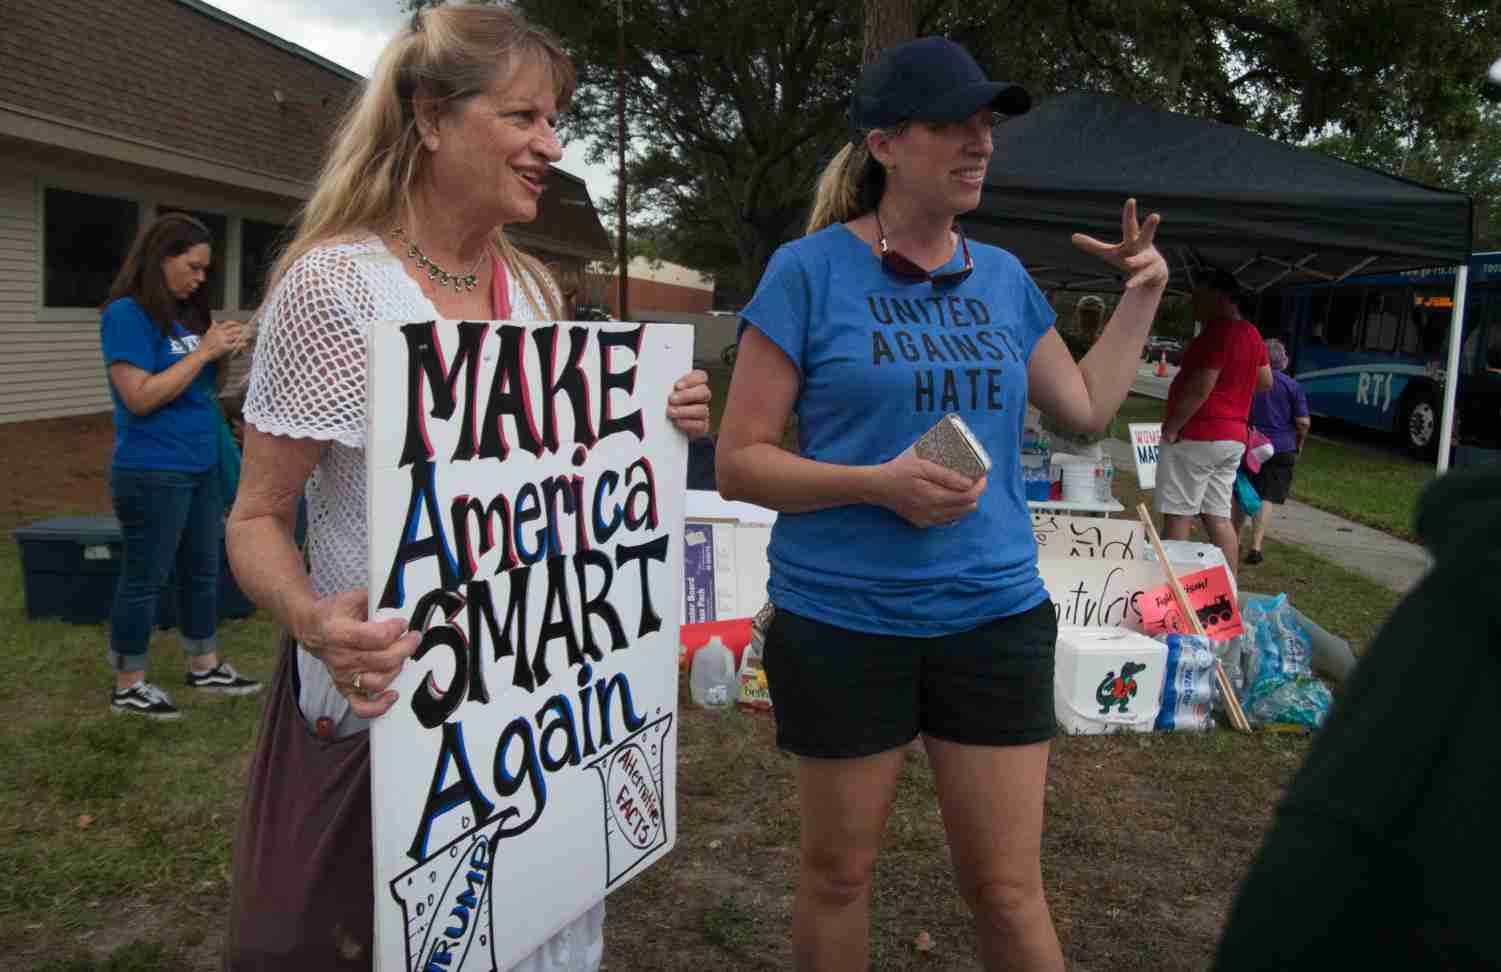 Protesters take a stand at University of Florida on Oct. 19.